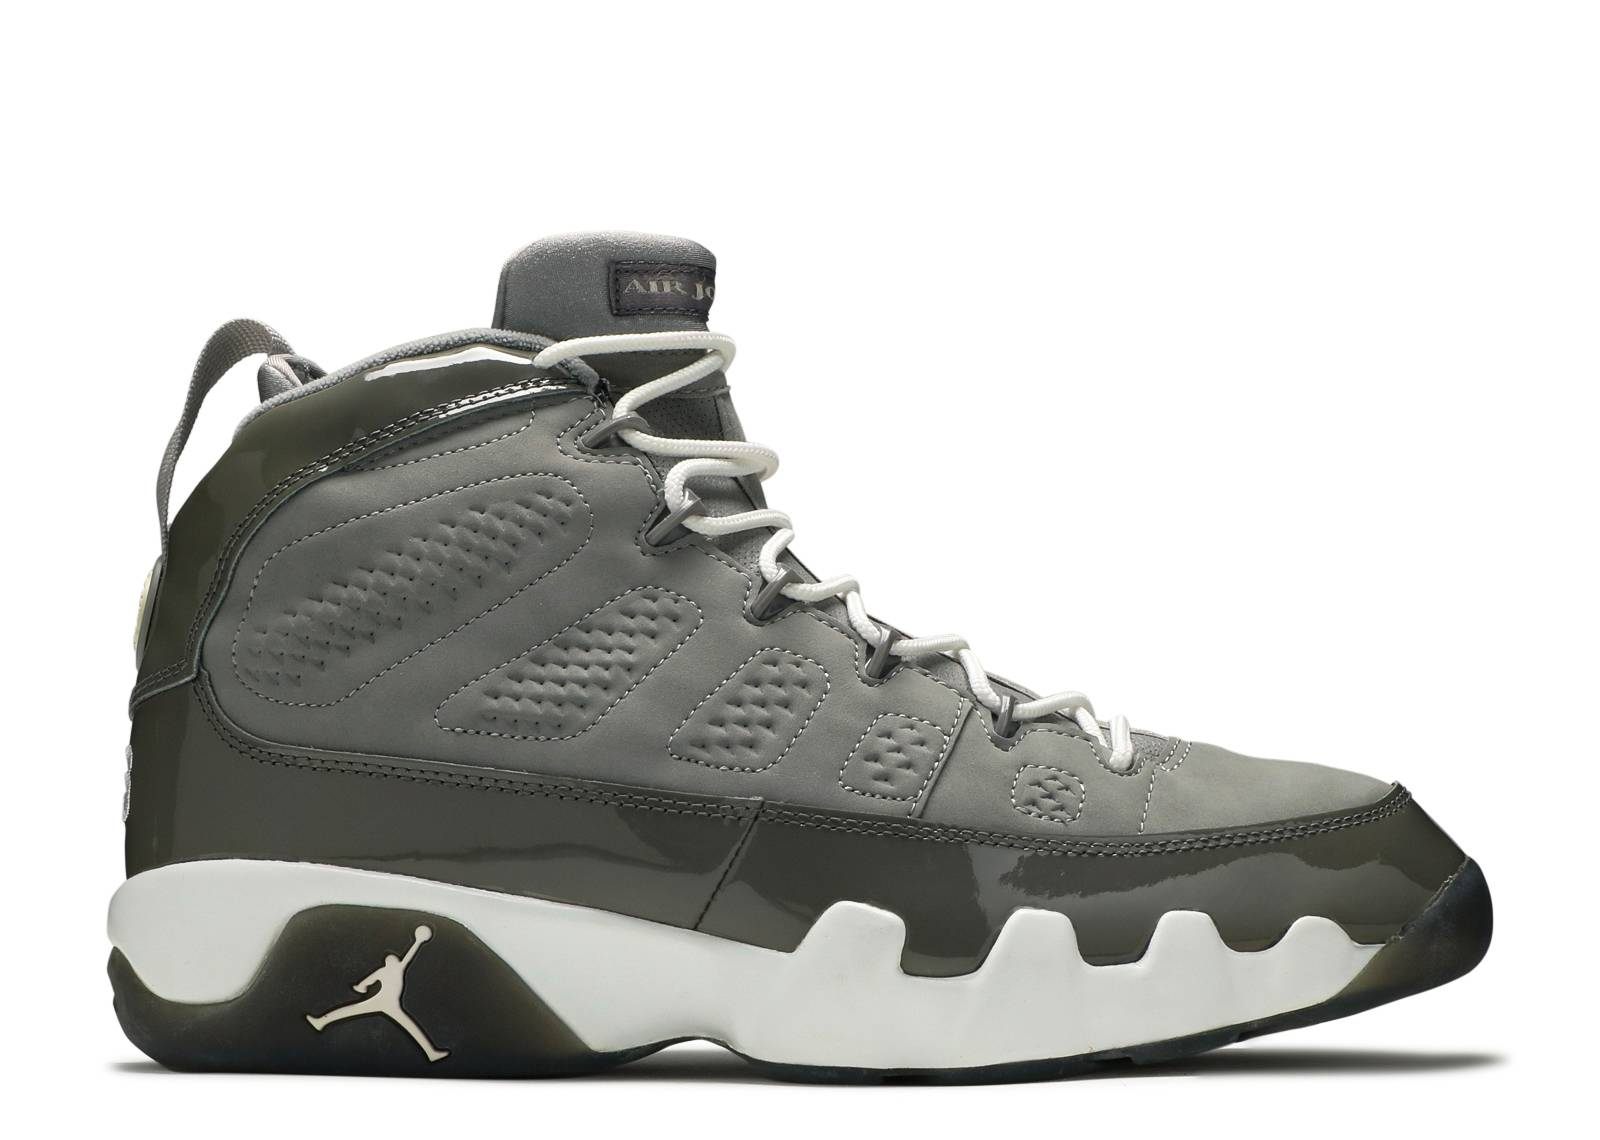 huge selection of 1b4d7 85749 Air Jordan 9 Retro